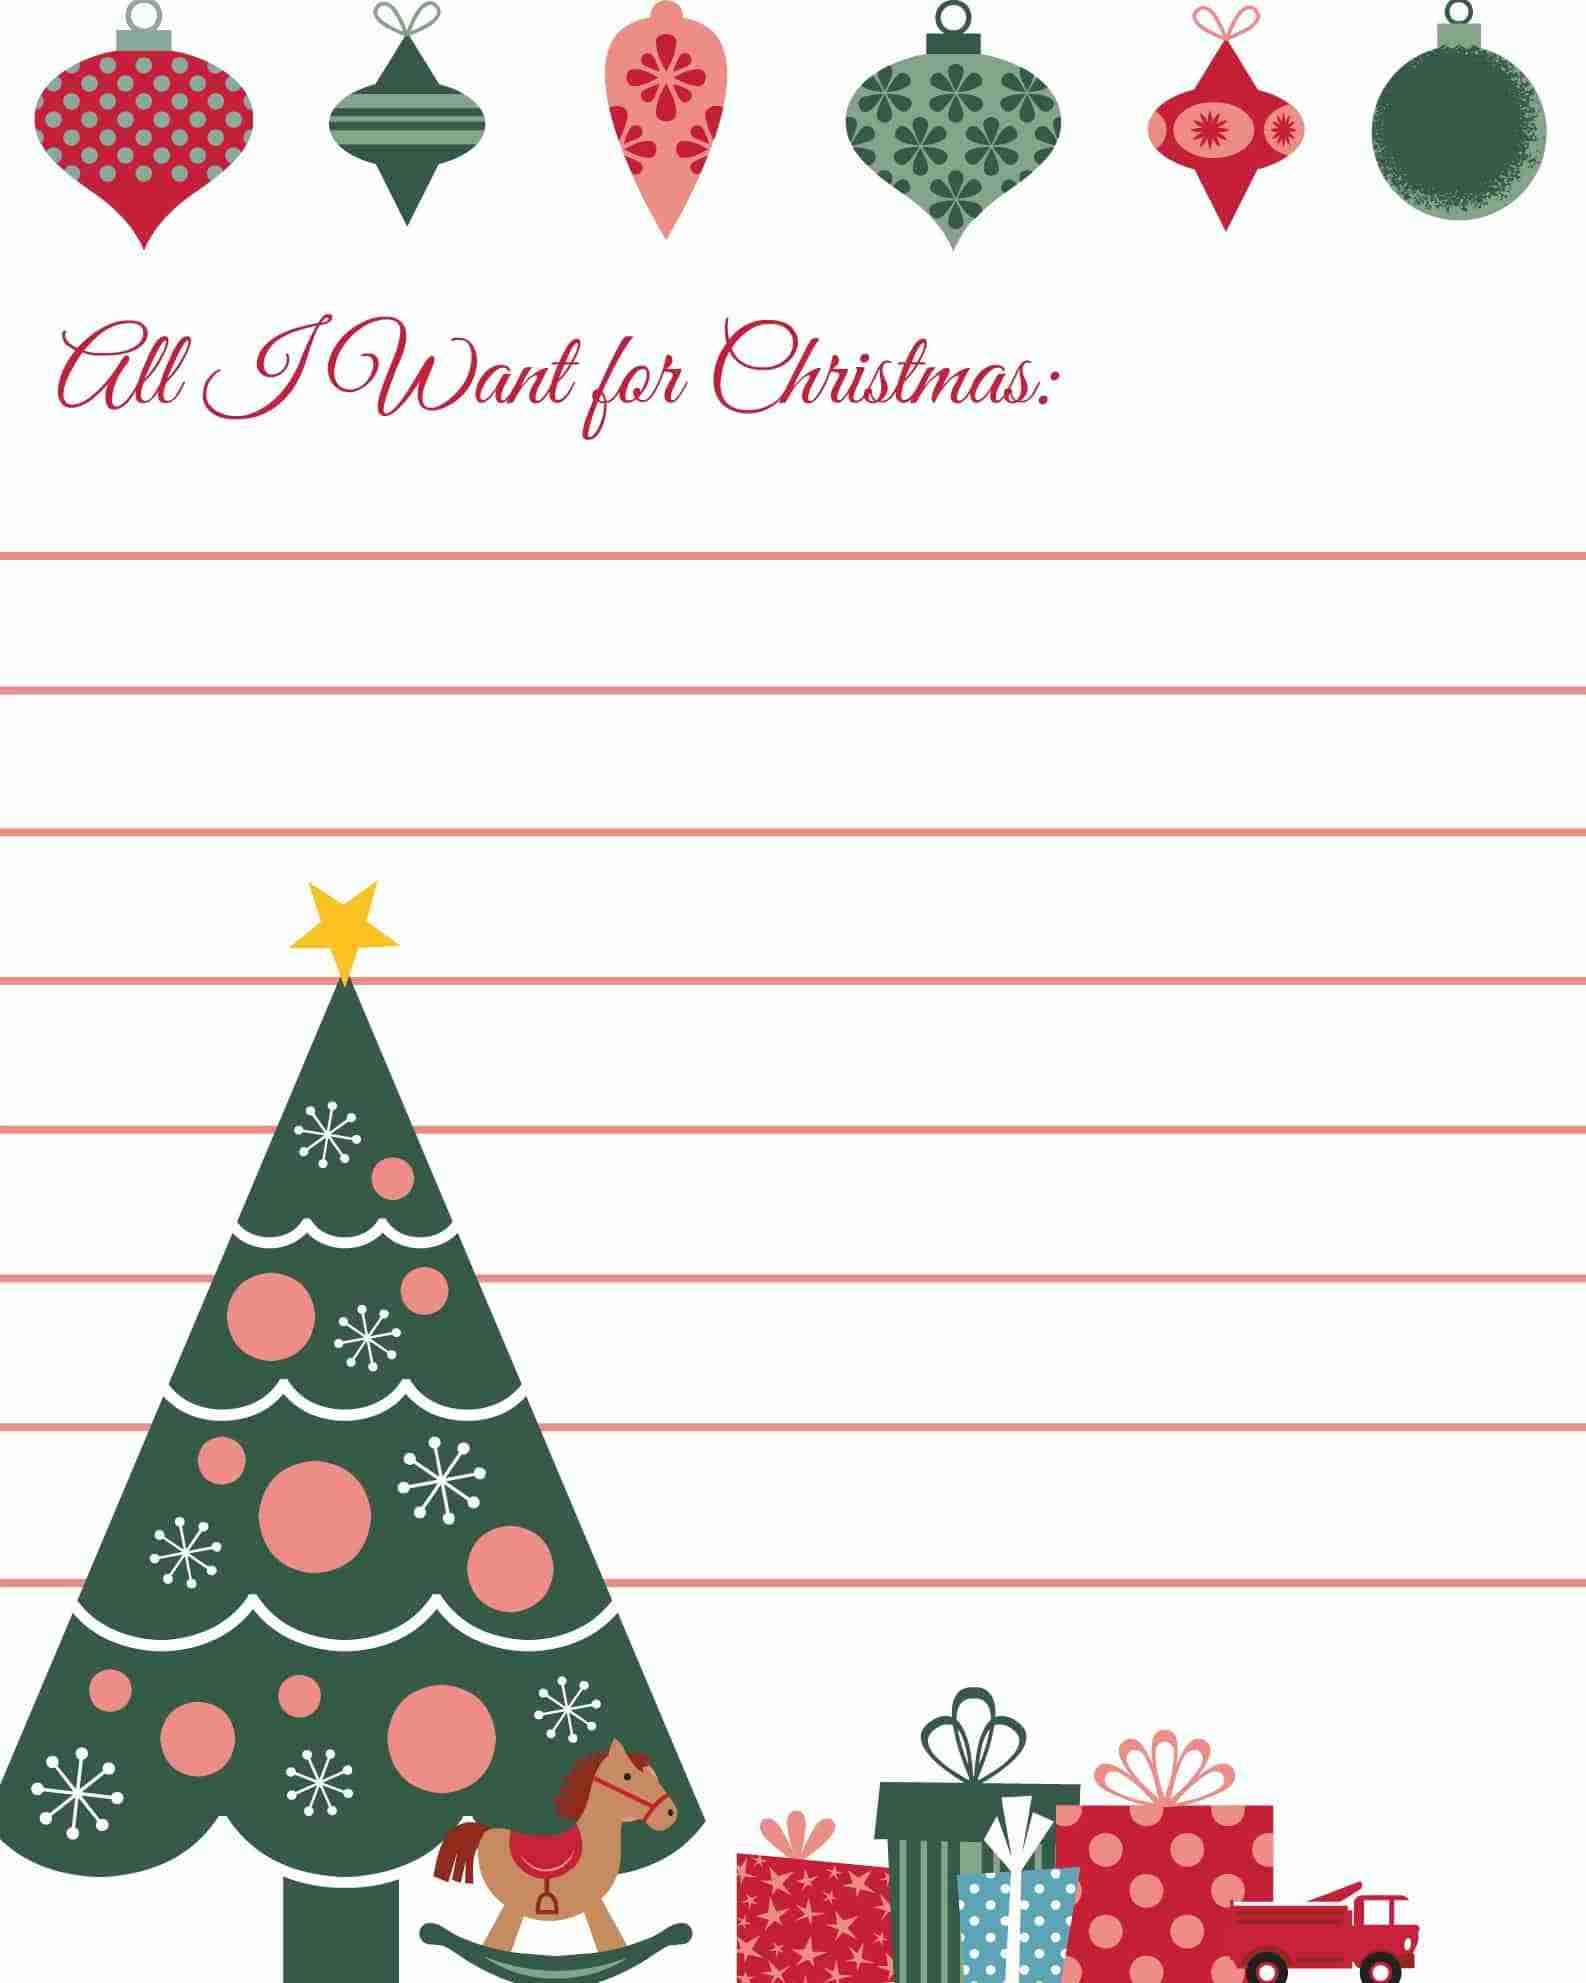 All I Want for Christmas Printable Wish List – Christmas Wish List Printable